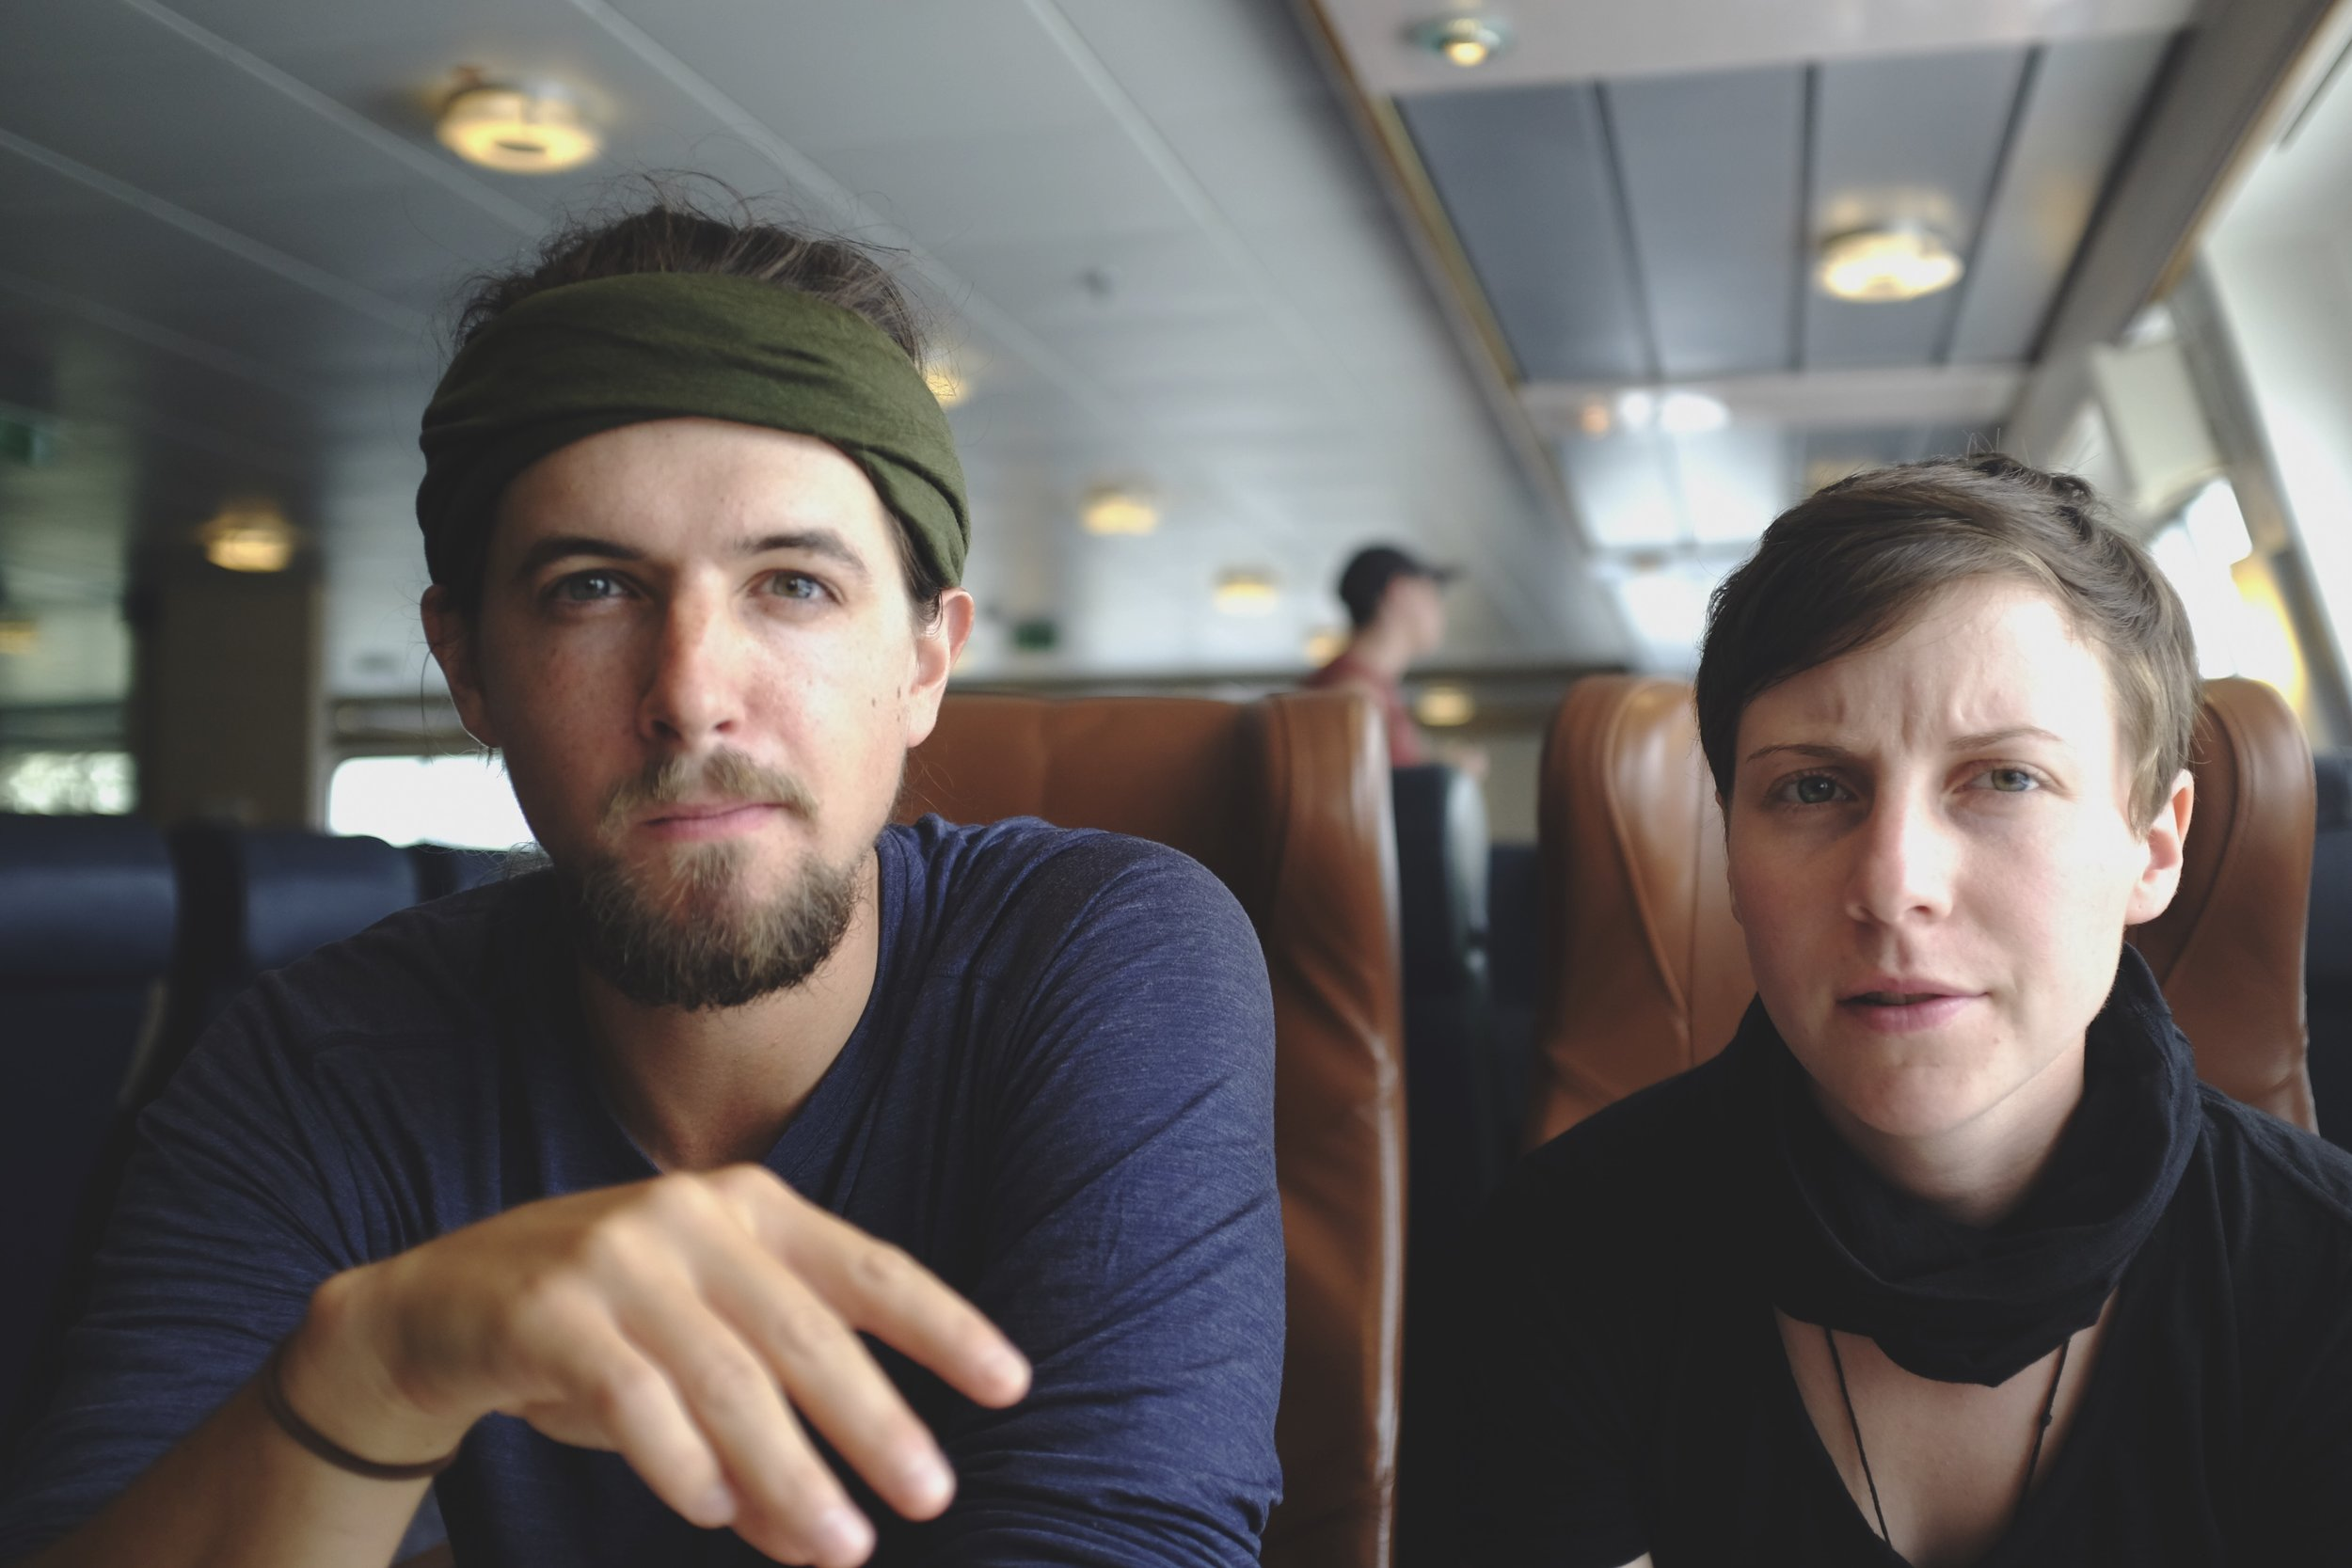 Our essence captured by Leslie on the ferry to Picton.